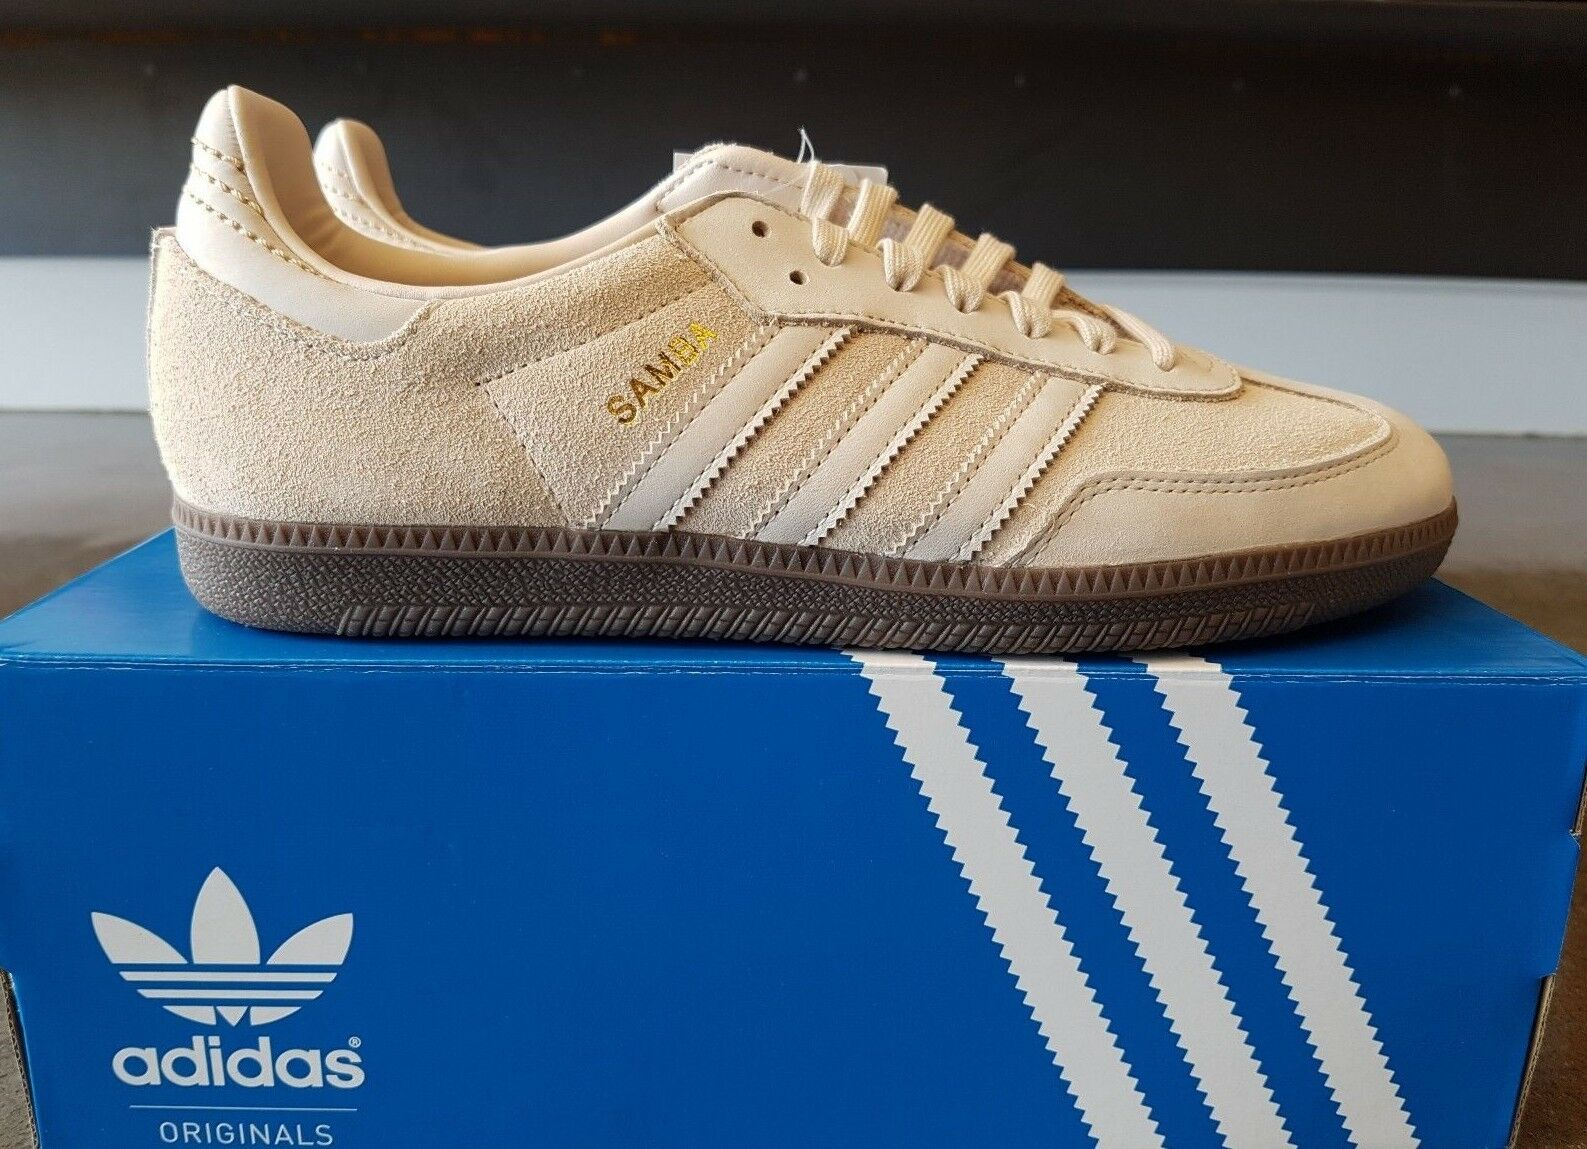 NEW IN THE BOX ADIDAS SAMBA FB CQ2090 LINEN SNEAKER FOR MEN